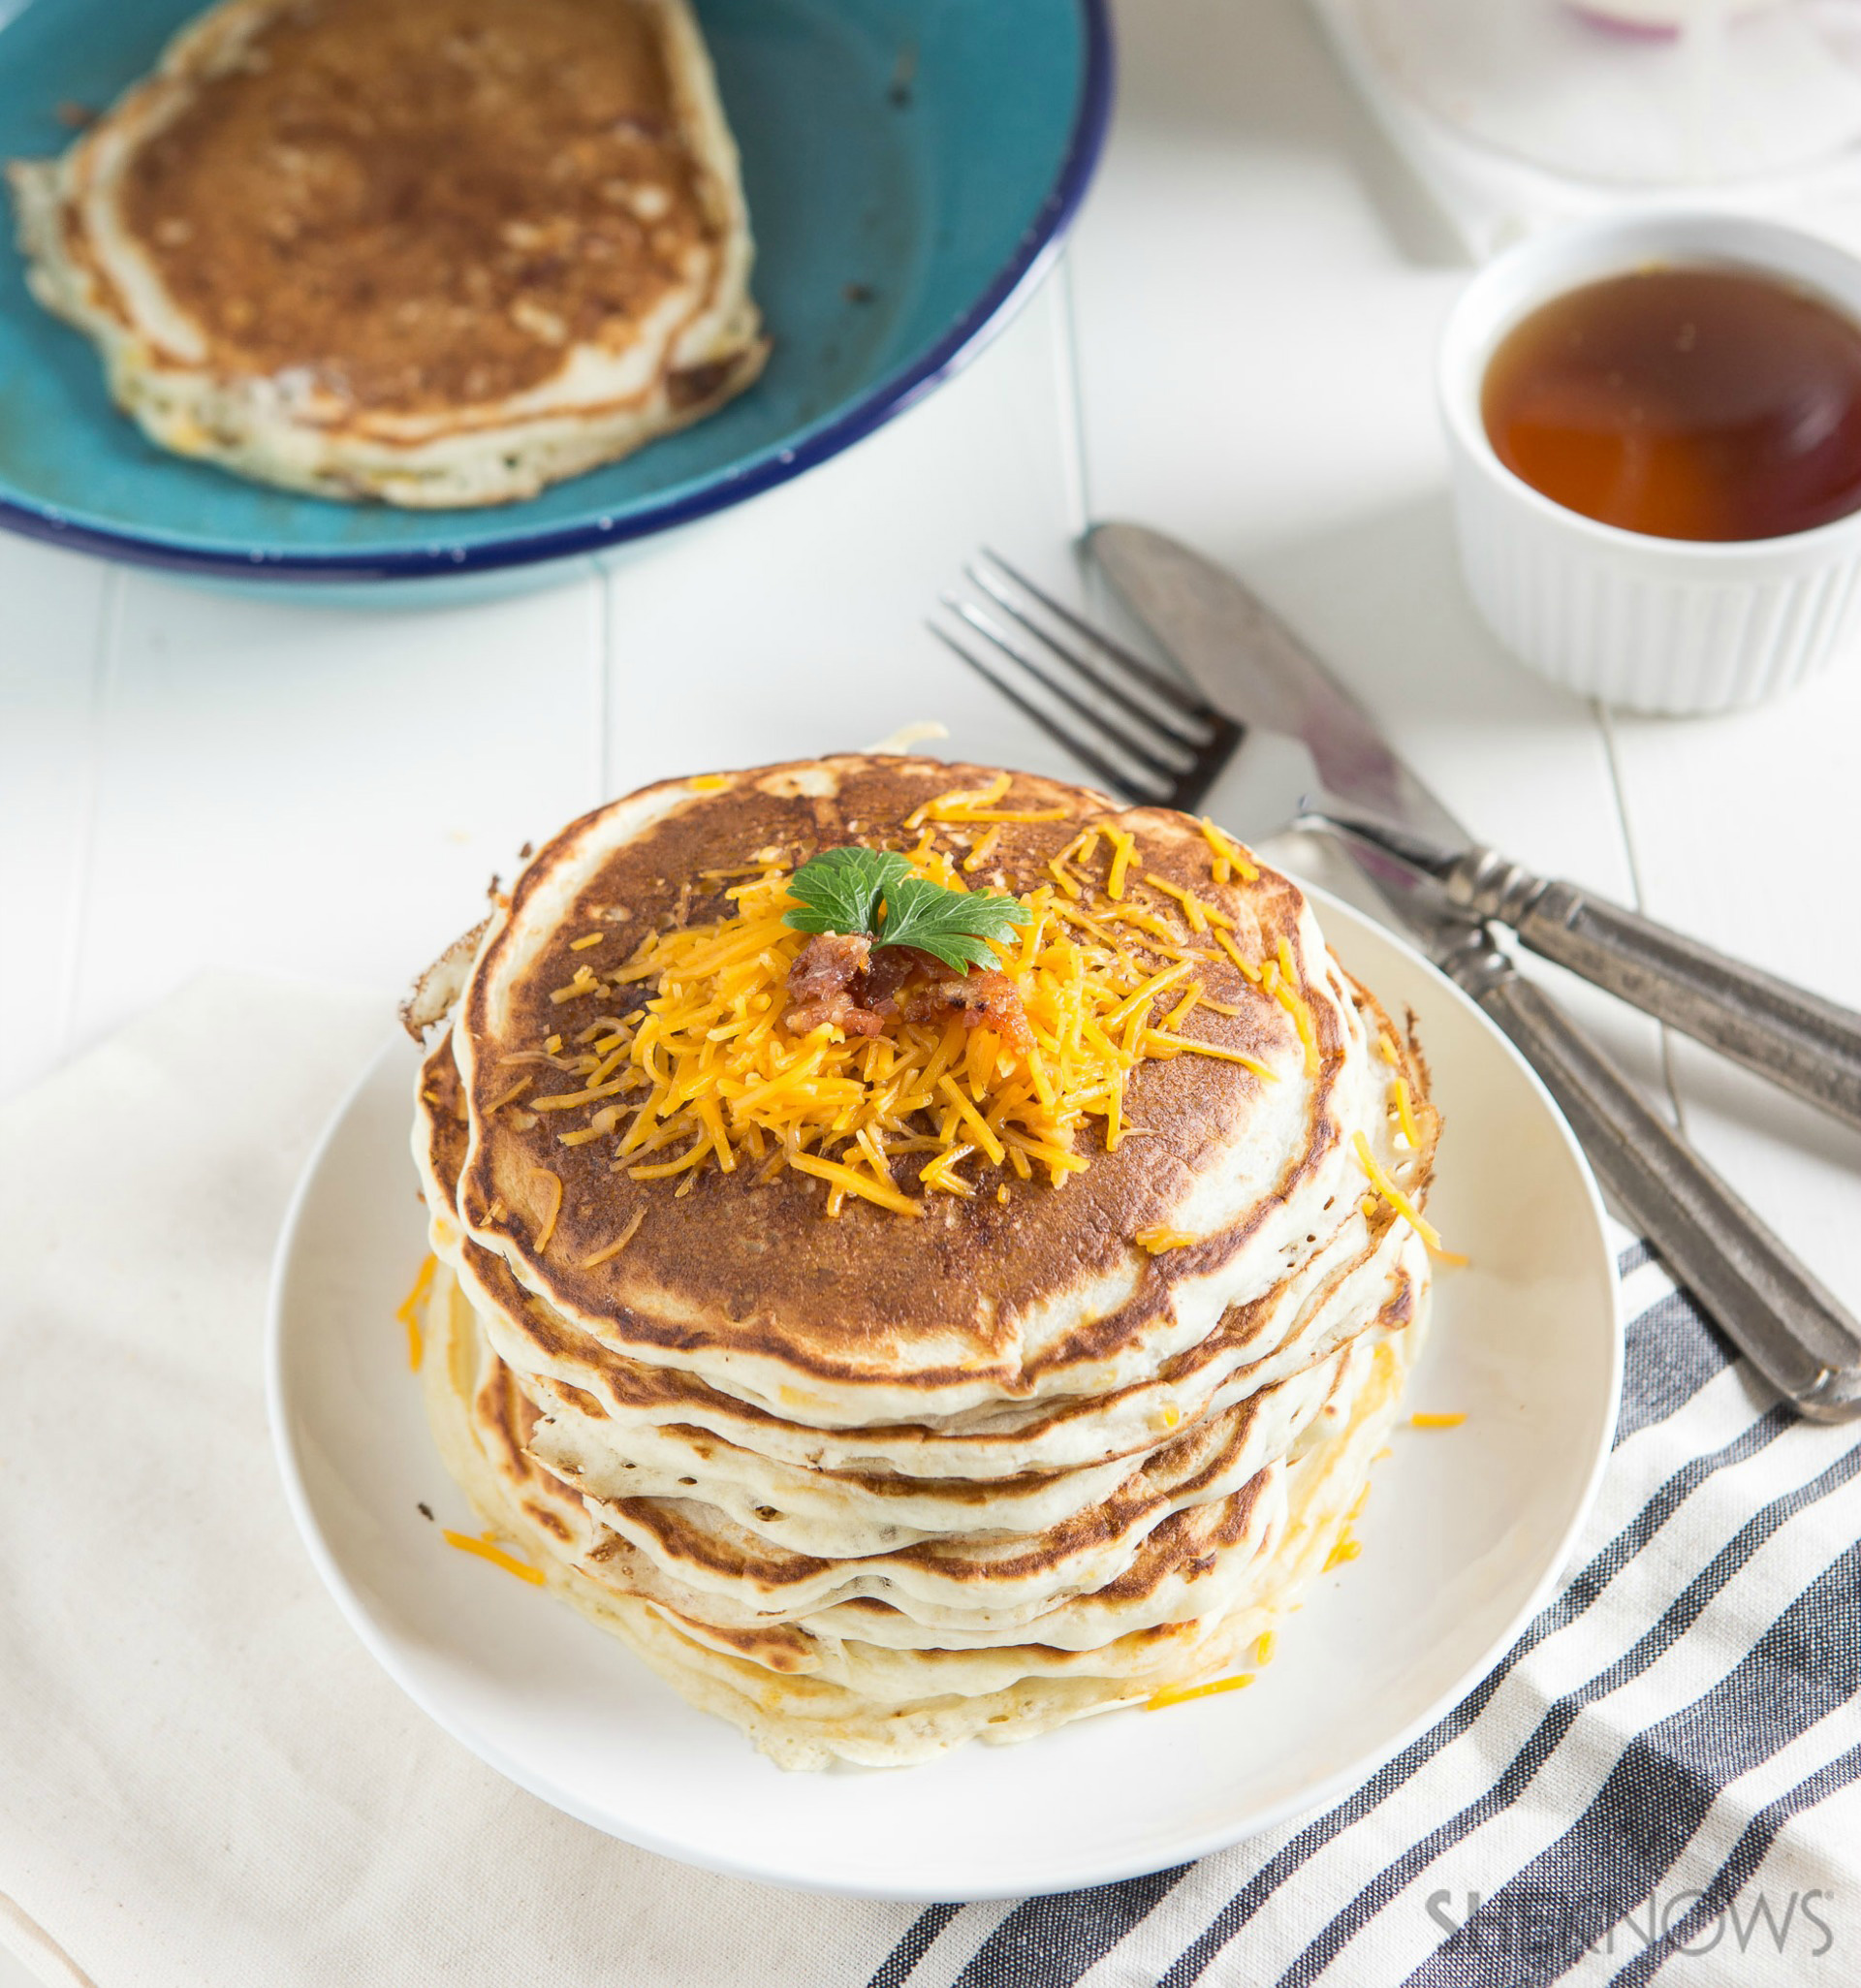 Savory bacon and cheese pancakes